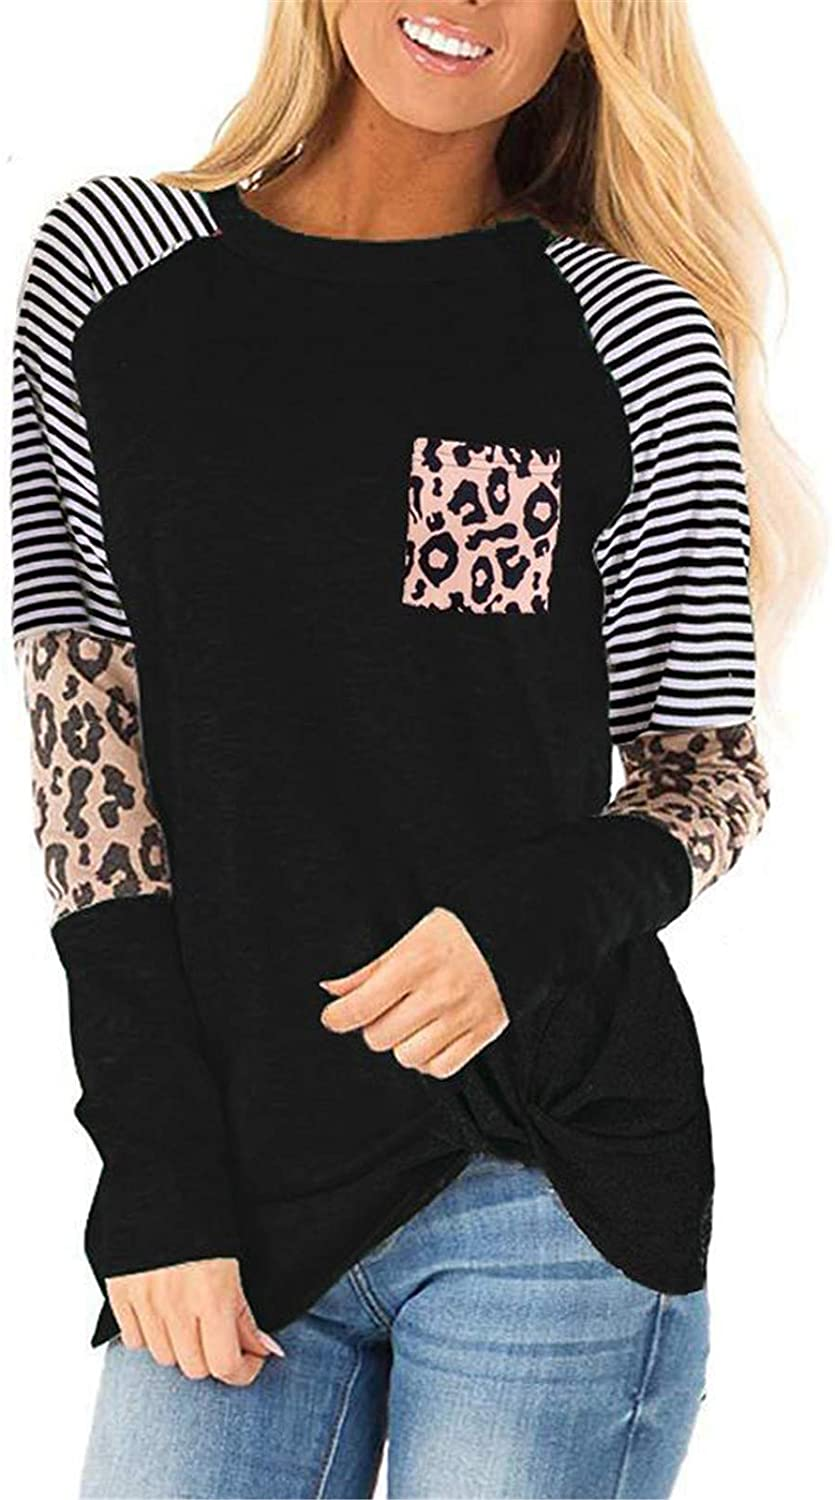 Poulax Women's Casual Knot T Shirts Leopard Color Block Long Sleeve Tie Dye Tunic Tops